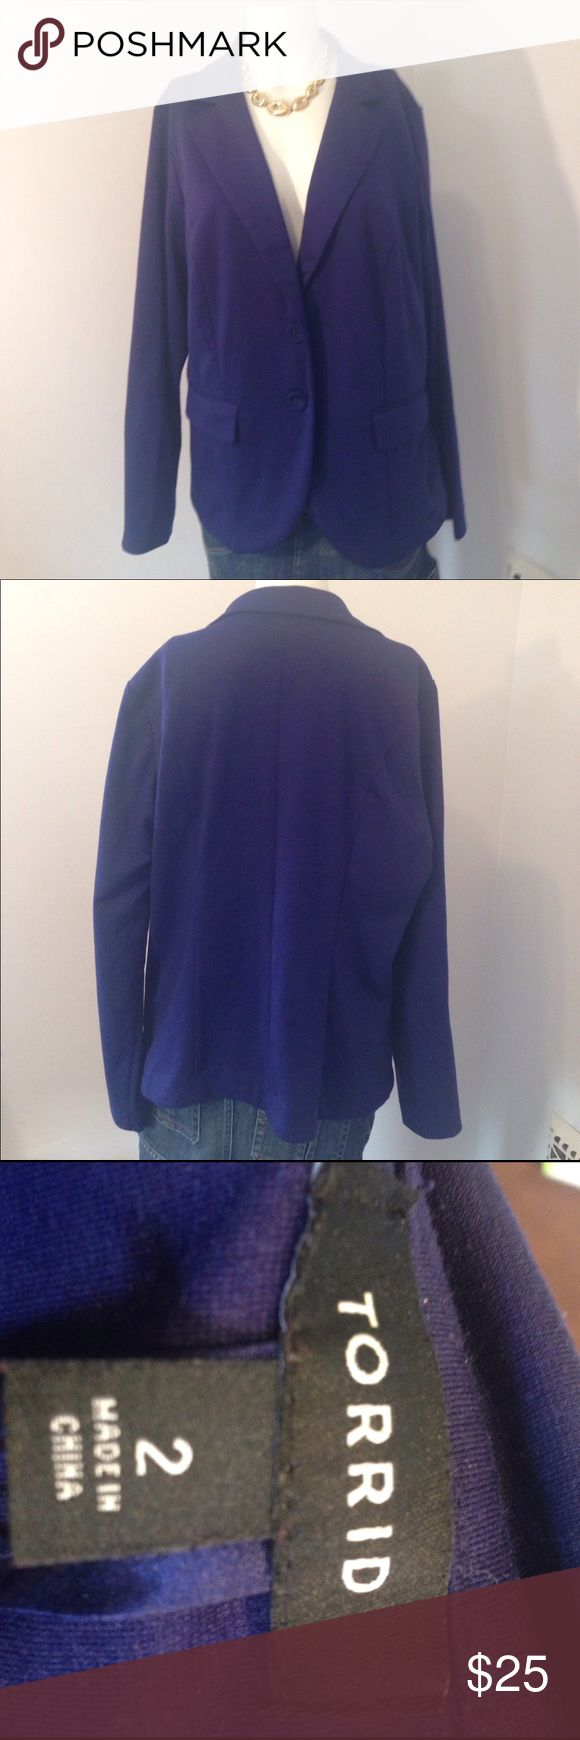 Torrid Royal blue blazer plus size Torrid Royal blue blazer plus size 2x , 2 buttons in front, pockets aren't function able, polyester, rayon, spandex blend, good condition torrid Jackets & Coats Blazers